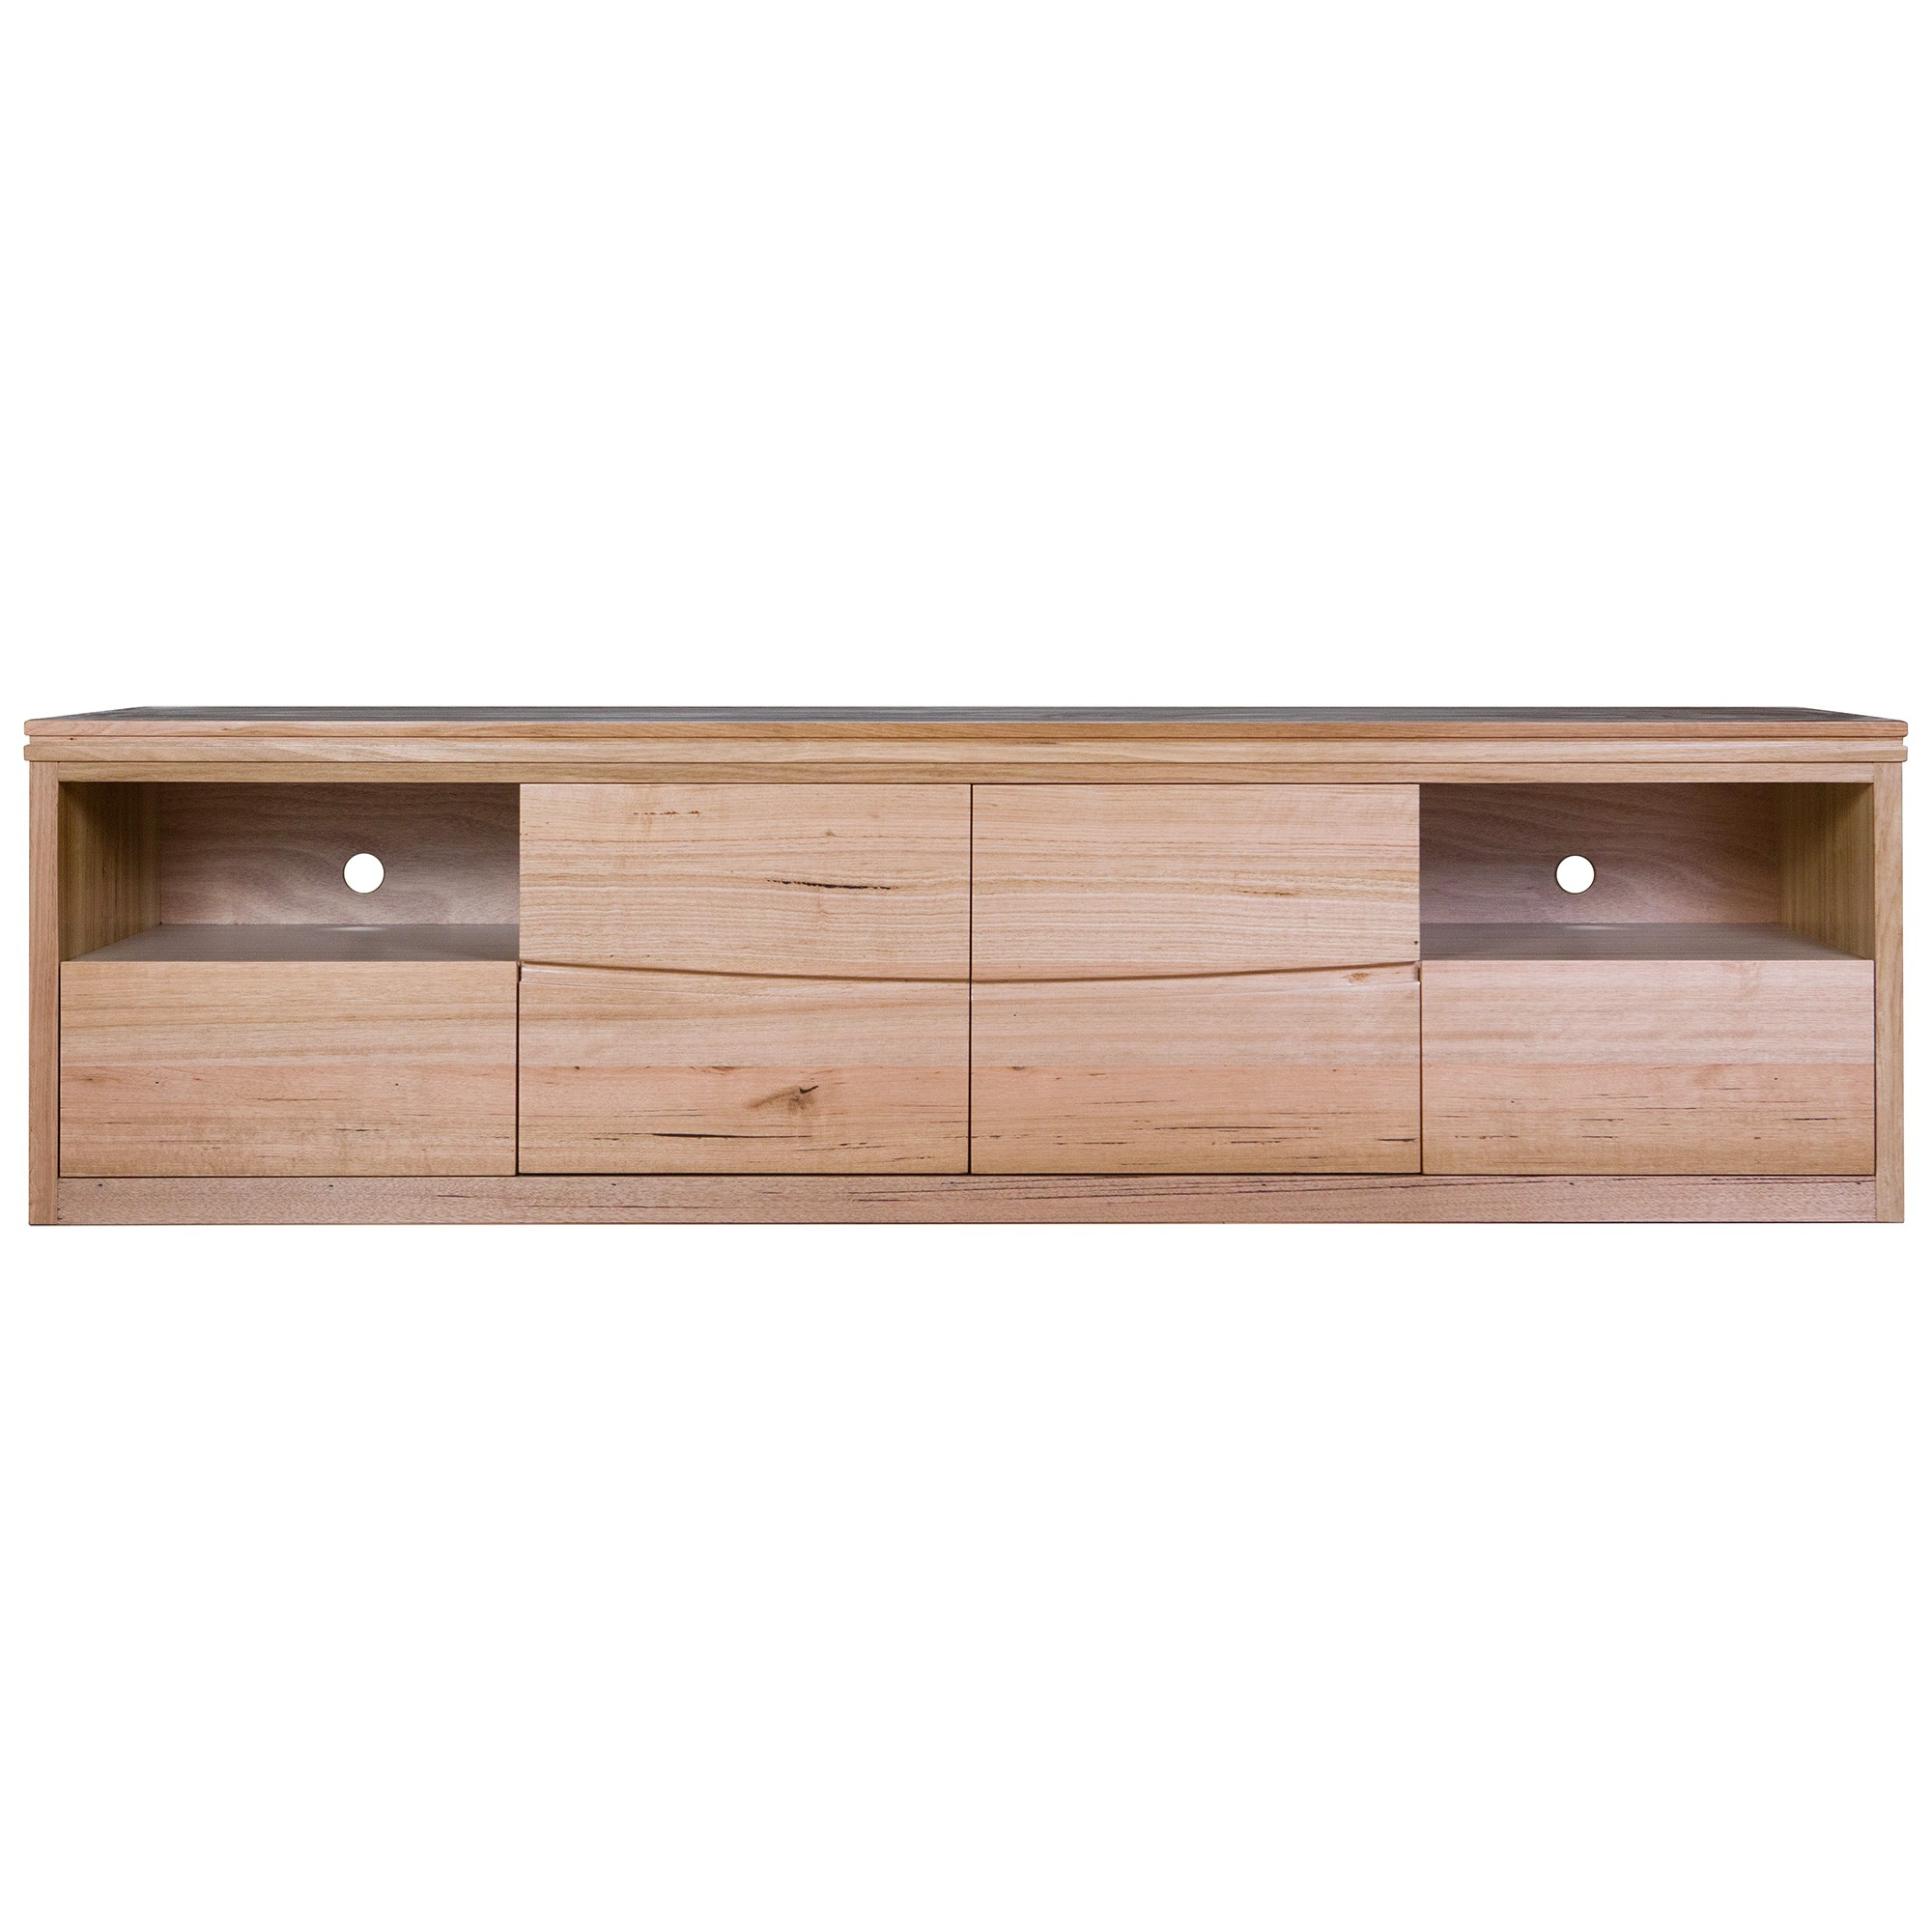 Irsia Tasmanian Oak Timber 2Door 2 Drawer TV Unit, 200cm